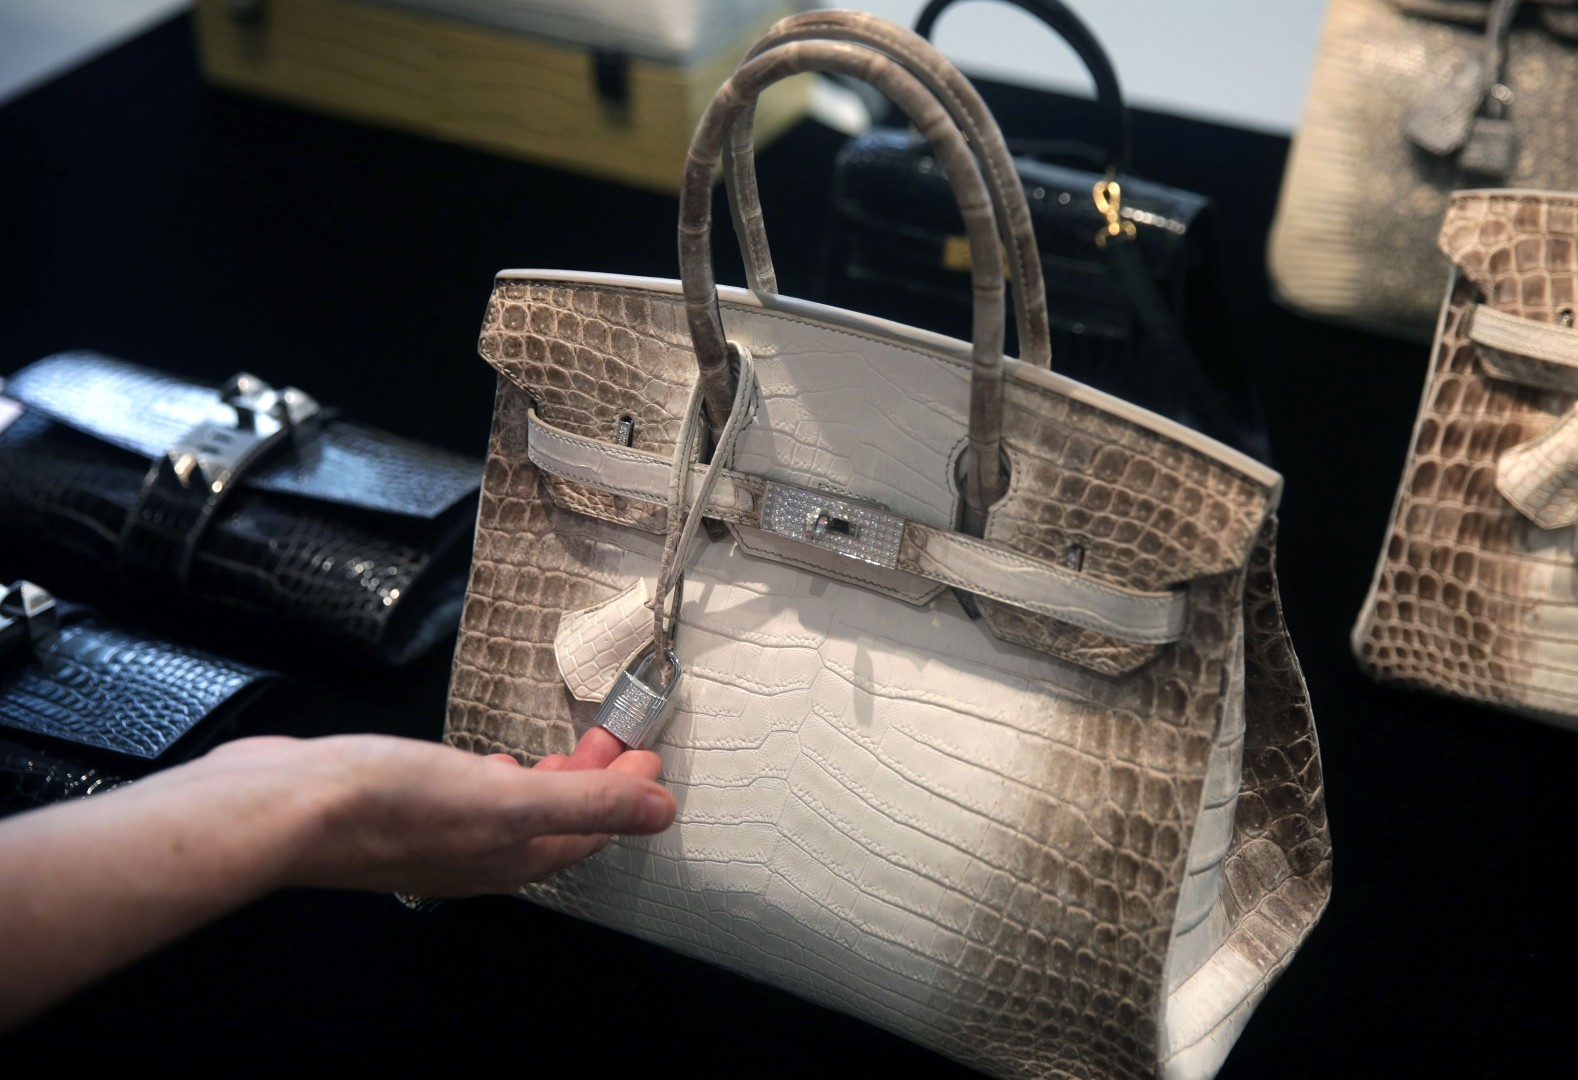 48f39b9b84e3 China's super rich to spend US$58 billion on gifting by 2020 | South ...